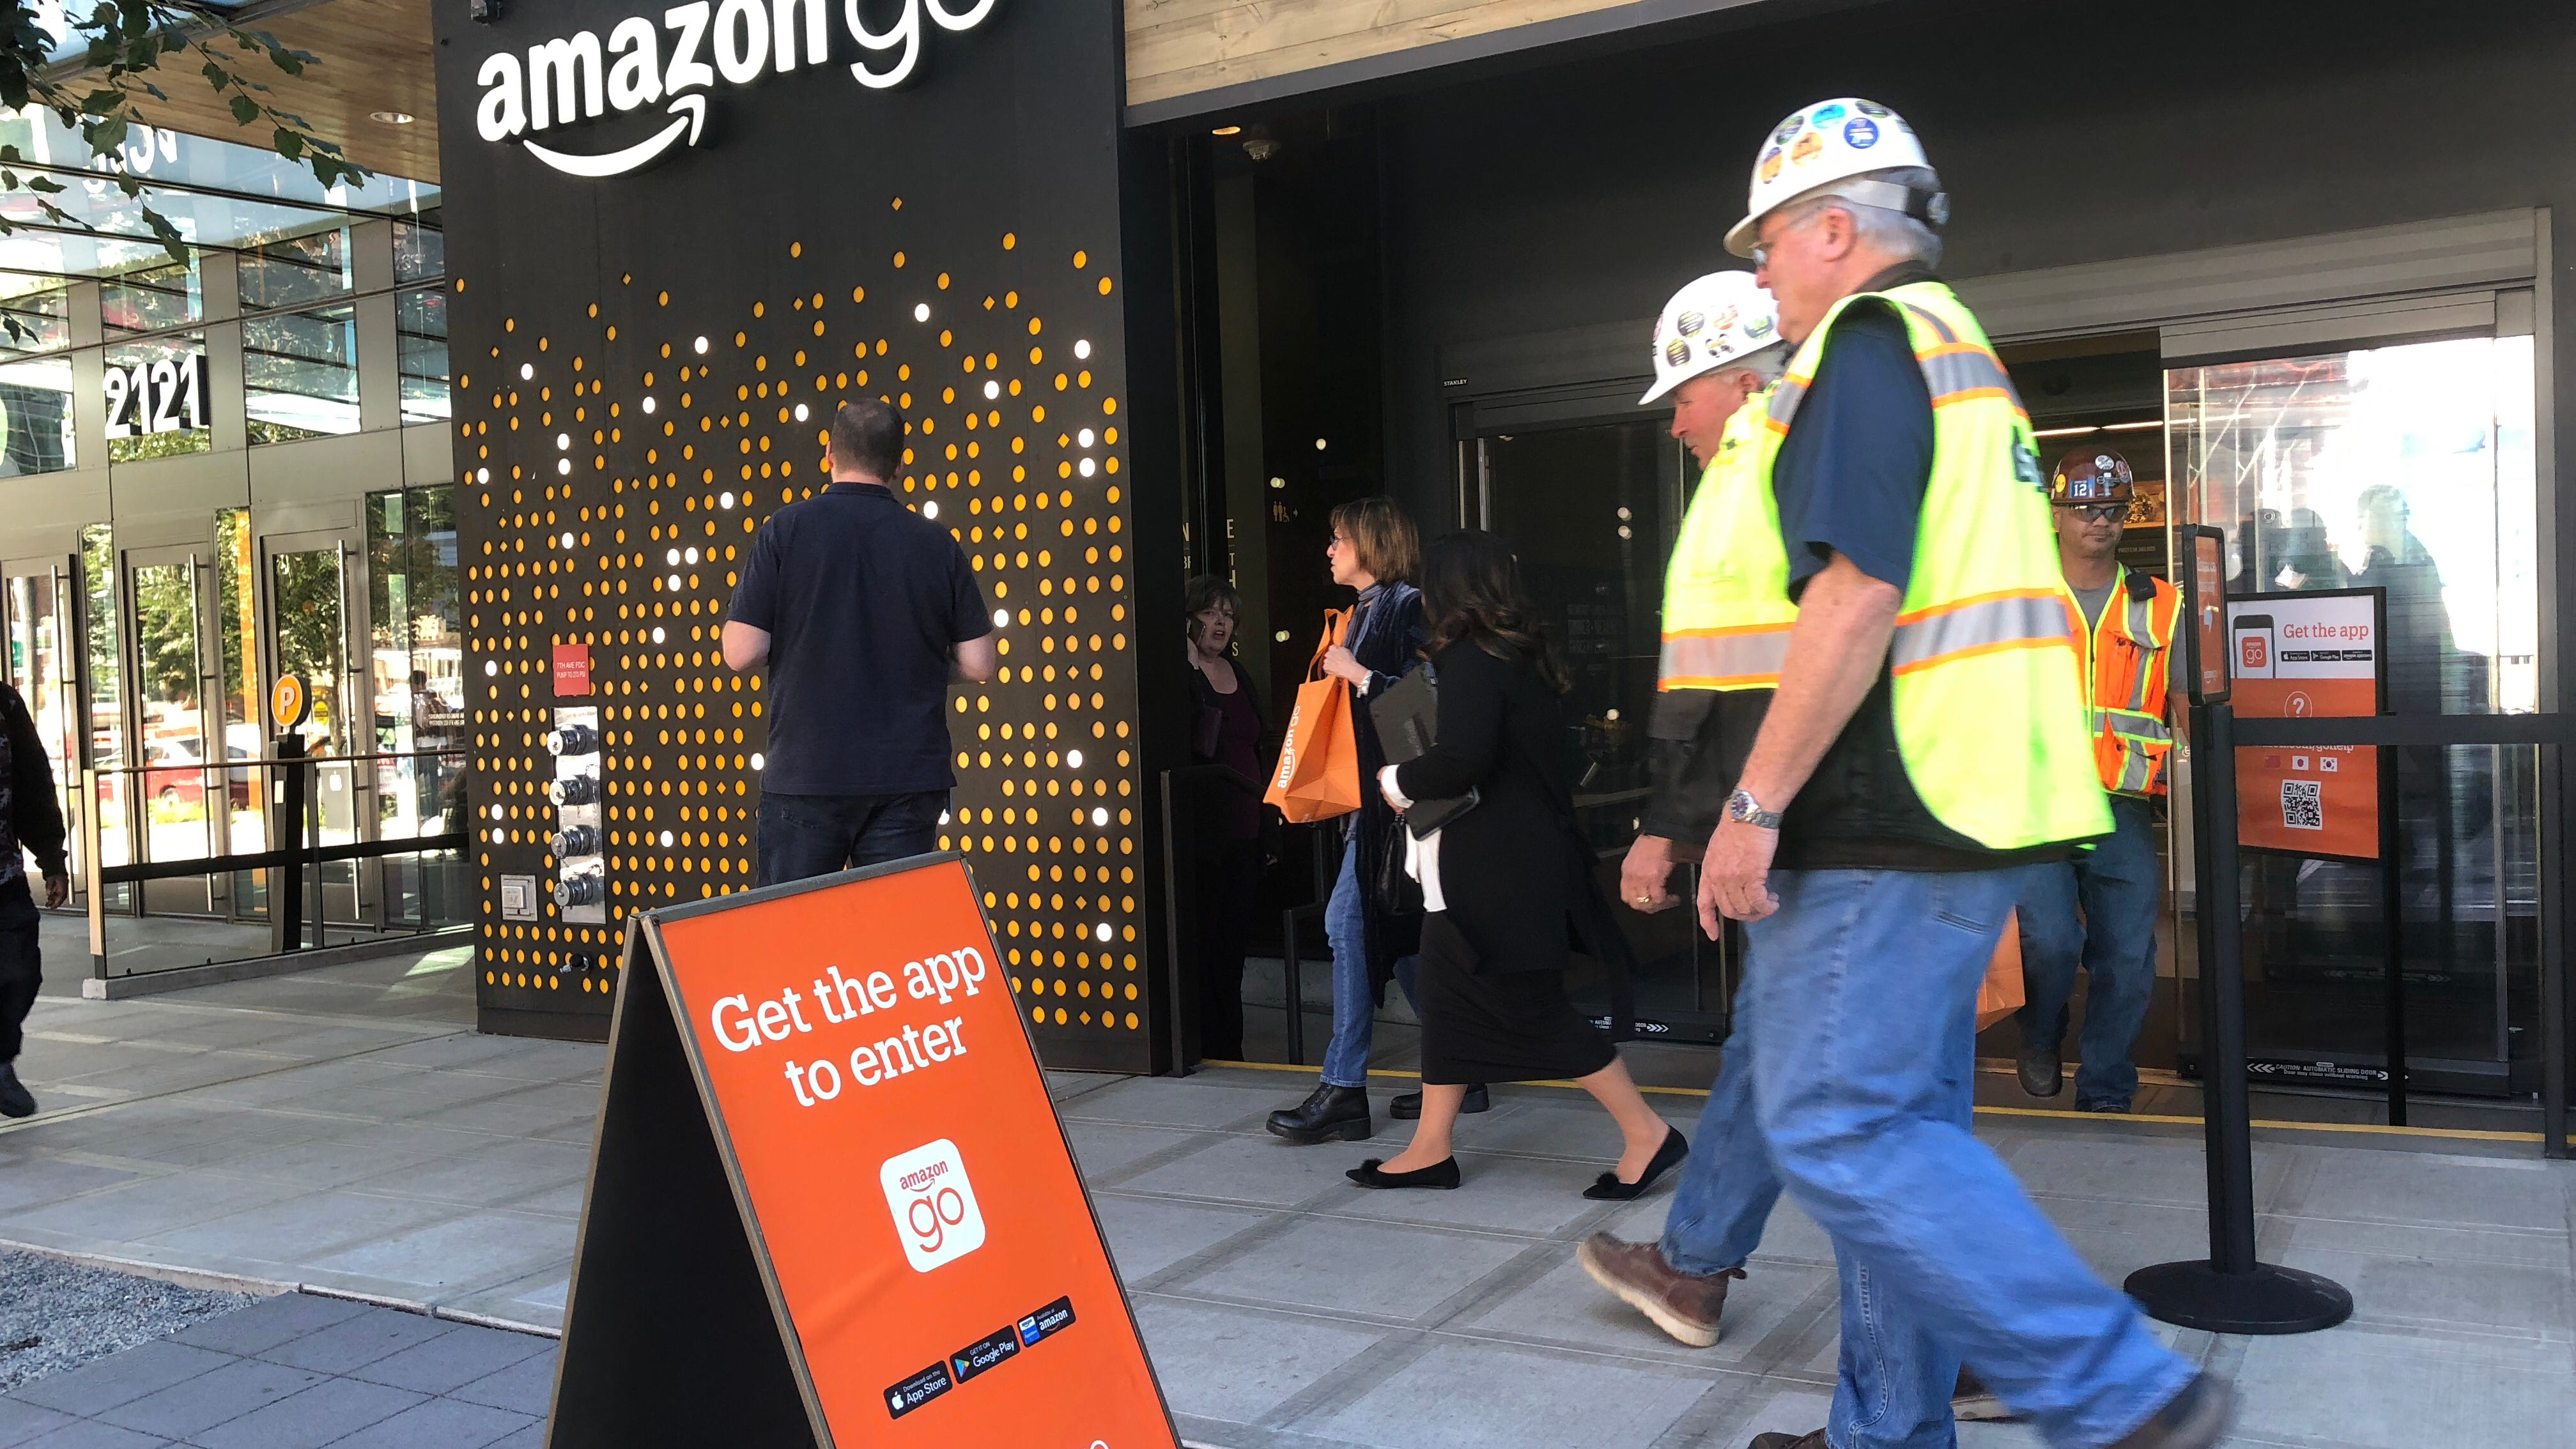 Amazon is planning to open up to 3,000 cashier-free stores by 2021, report says